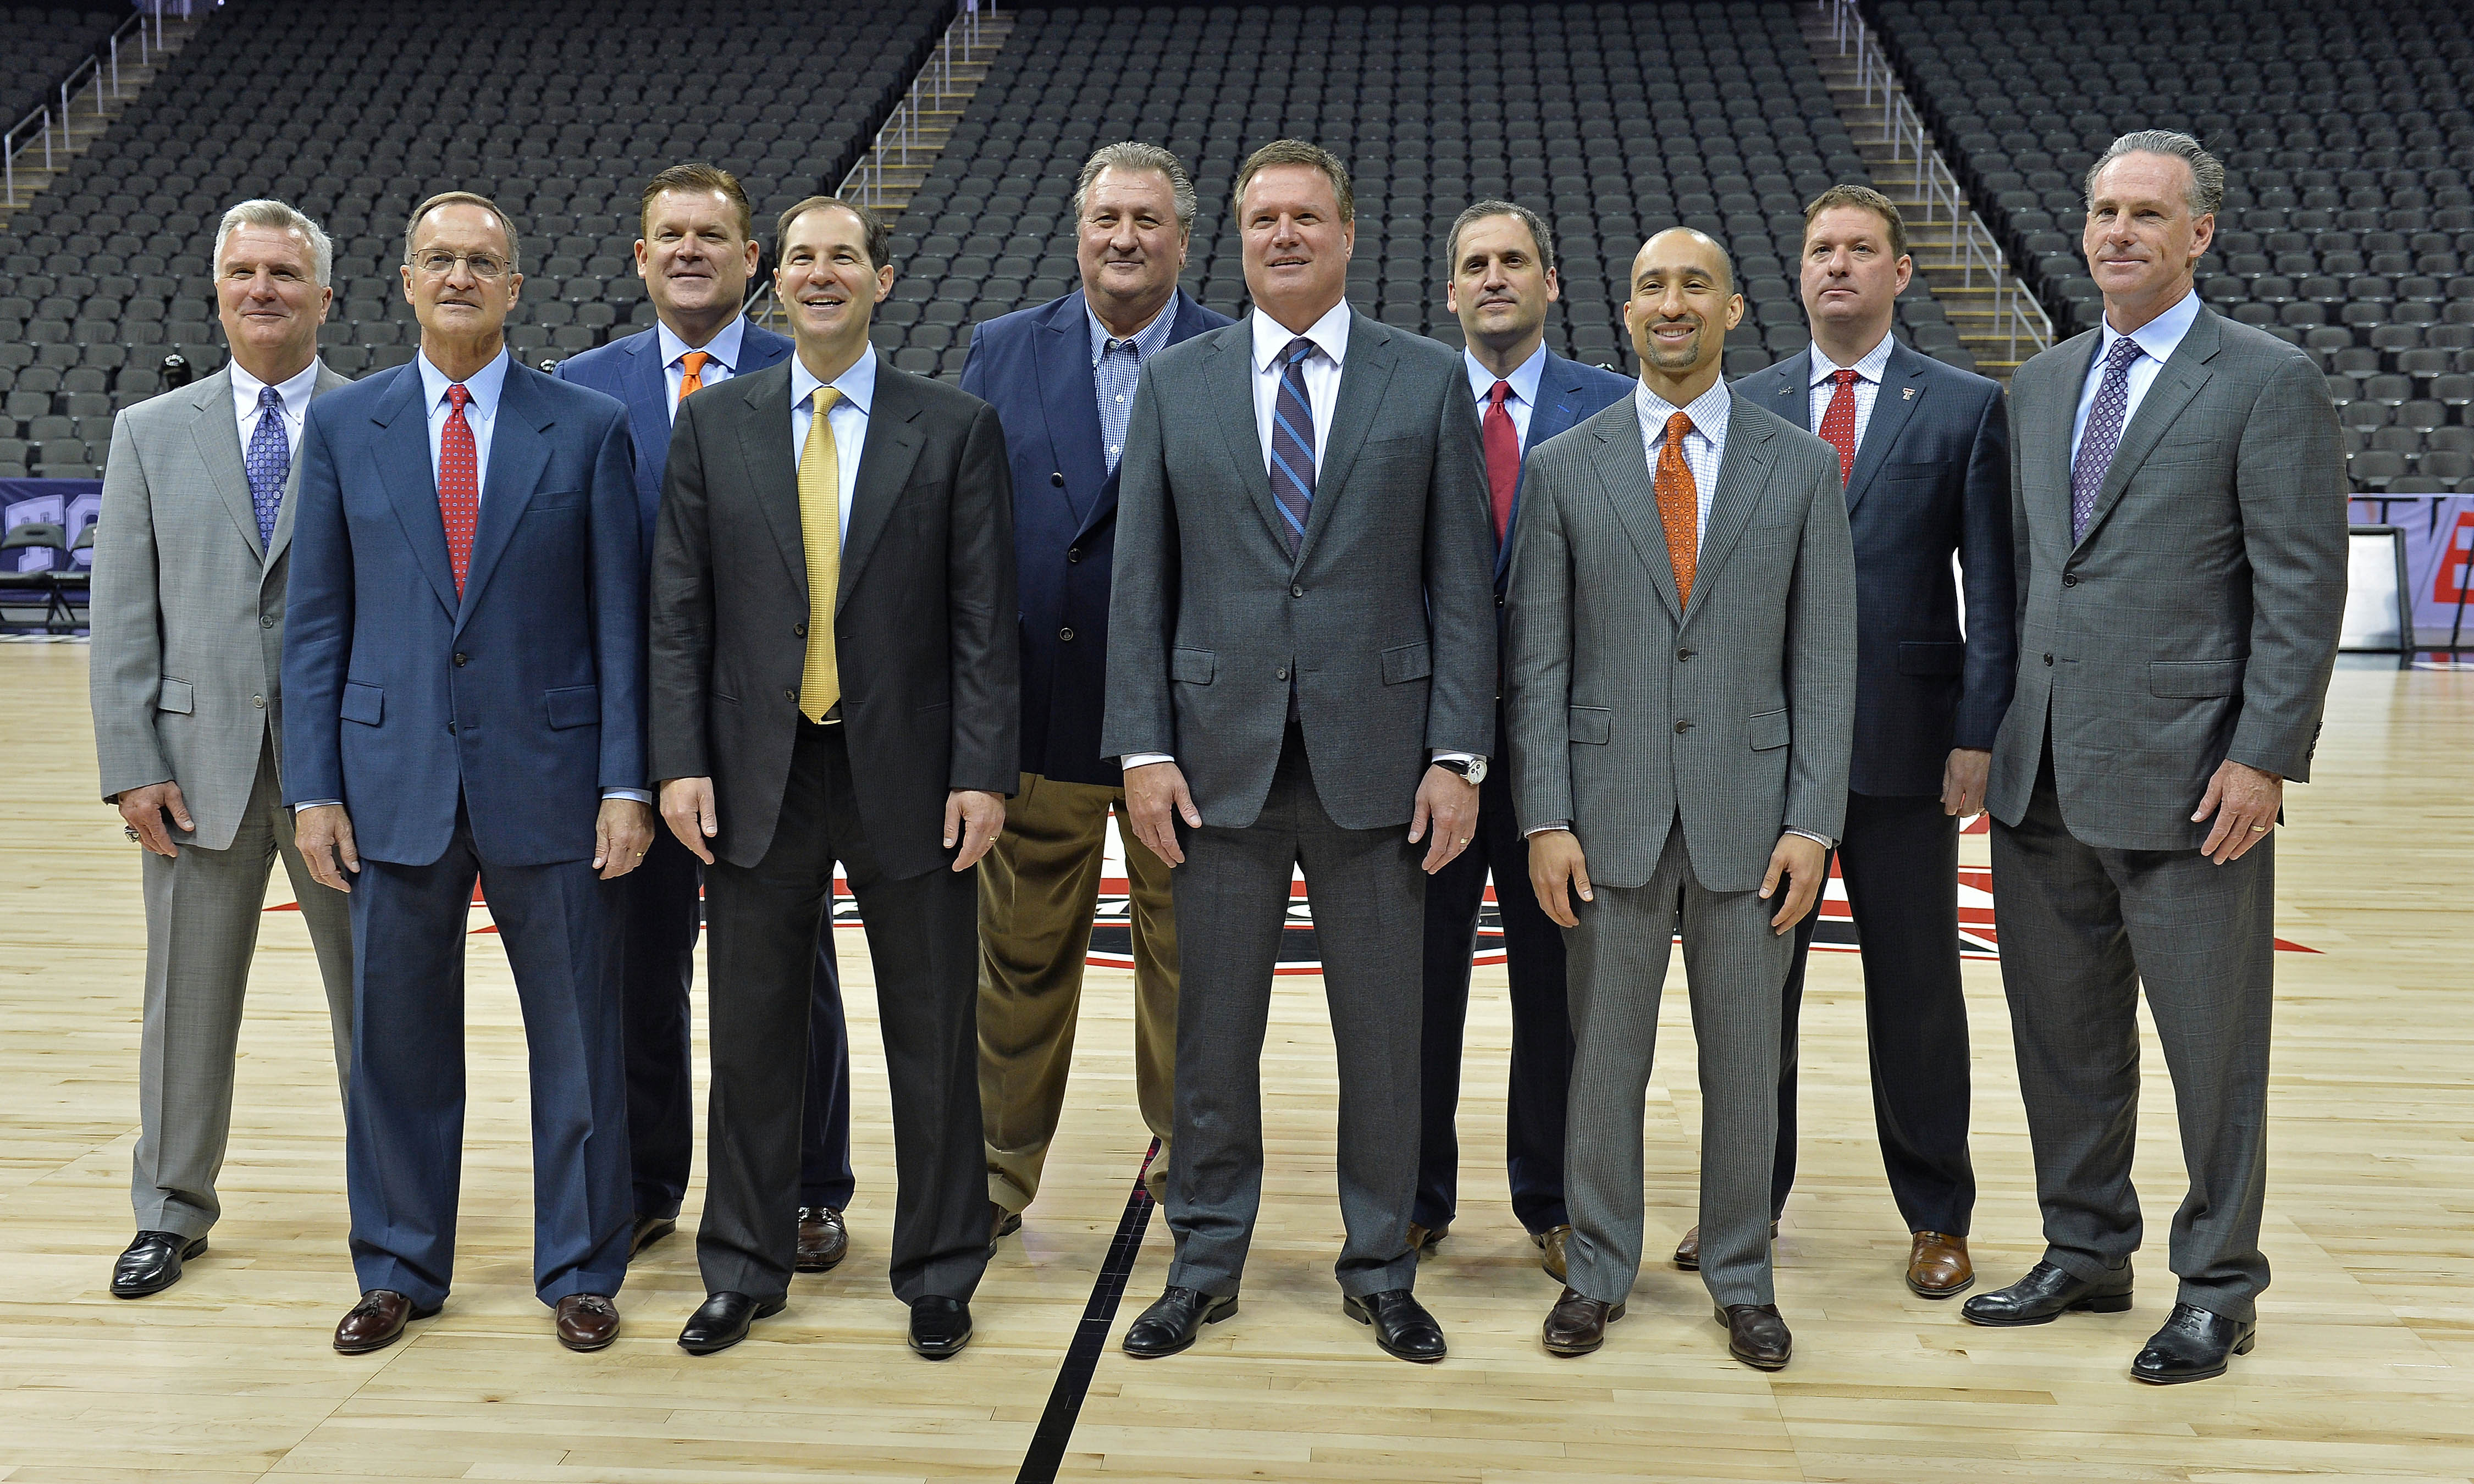 Oct 25, 2016; Kansas City, MO, USA;  Big 12 head coaches (from left to right) Bruce Weber from Kansas State, Lon Kruger from Oklahoma, Brad Underwood from Oklahoma State, Scott Drew from Baylor, Bob Huggins from West Virginia, Bill Self from Kansas, Steve Prohm from Iowa State, Shaka Smart from Texas, Chris Beard from Texas Tech and Jamie Dixon from TCU, pose for a group photo during the Big 12 Basketball Media Day at the Sprint Center. Mandatory Credit: Peter G. Aiken-USA TODAY Sports